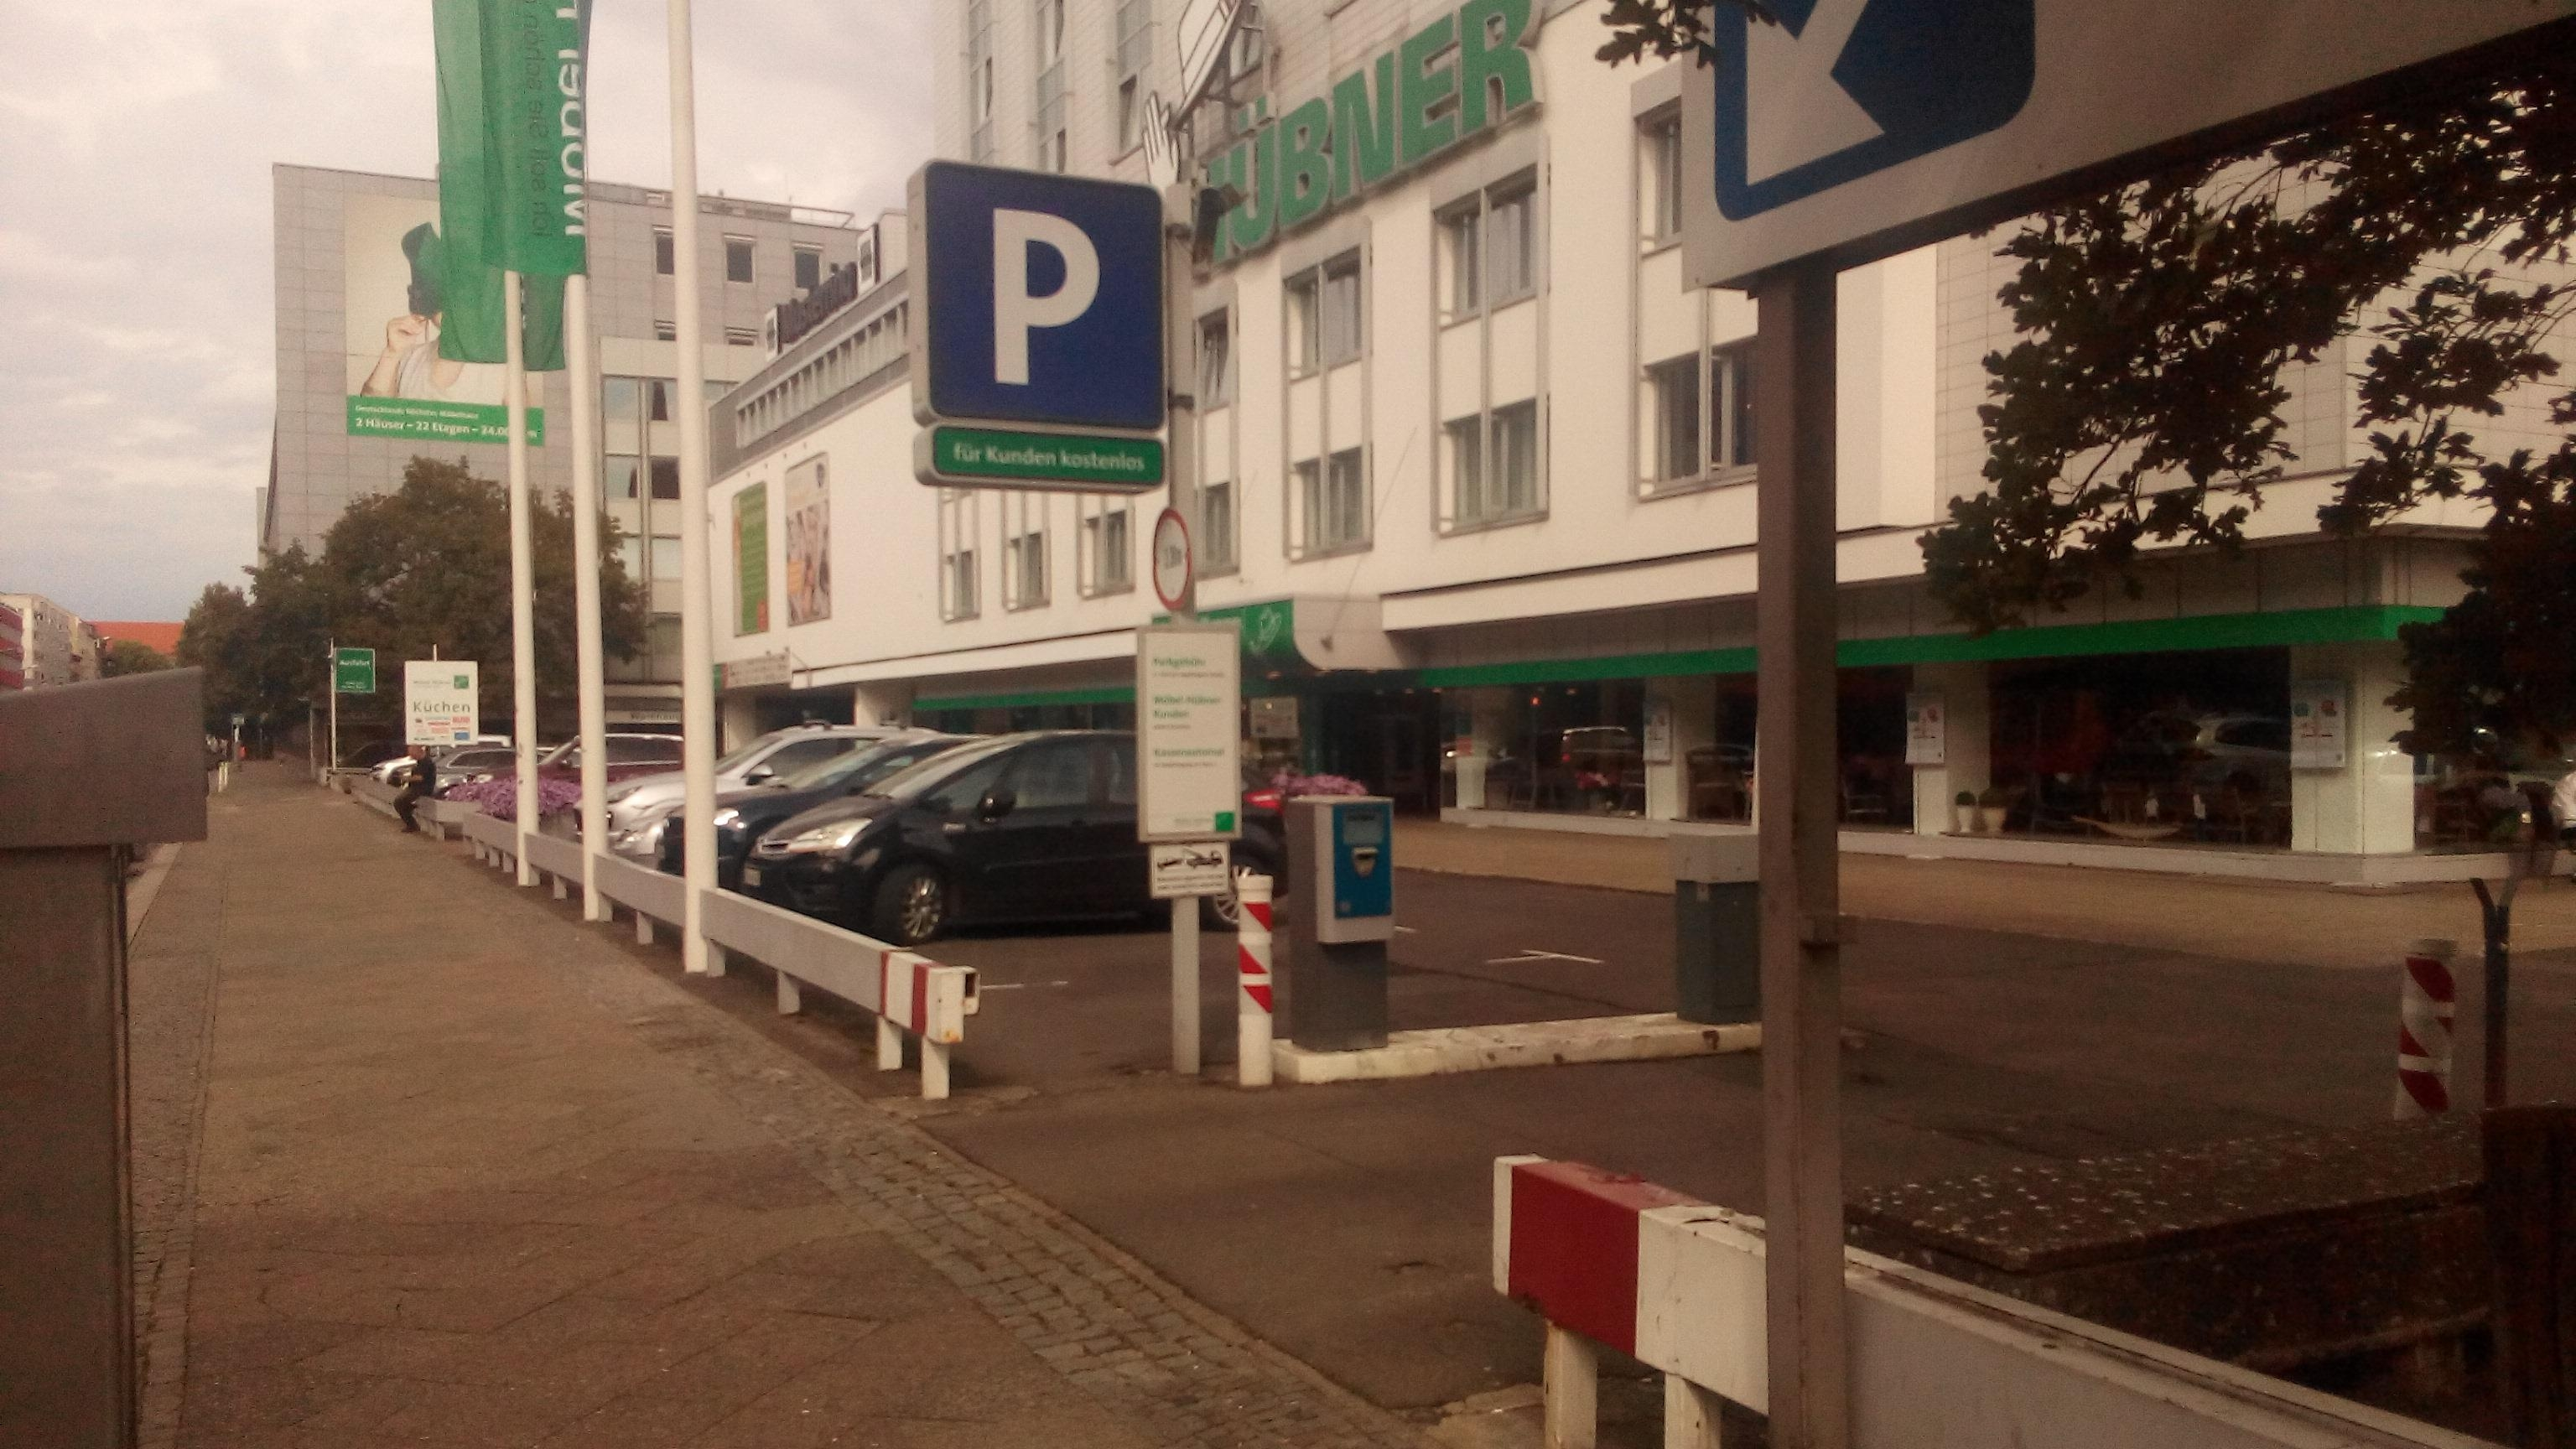 M bel h bner parking in berlin parkme for Mobel lagerverkauf berlin